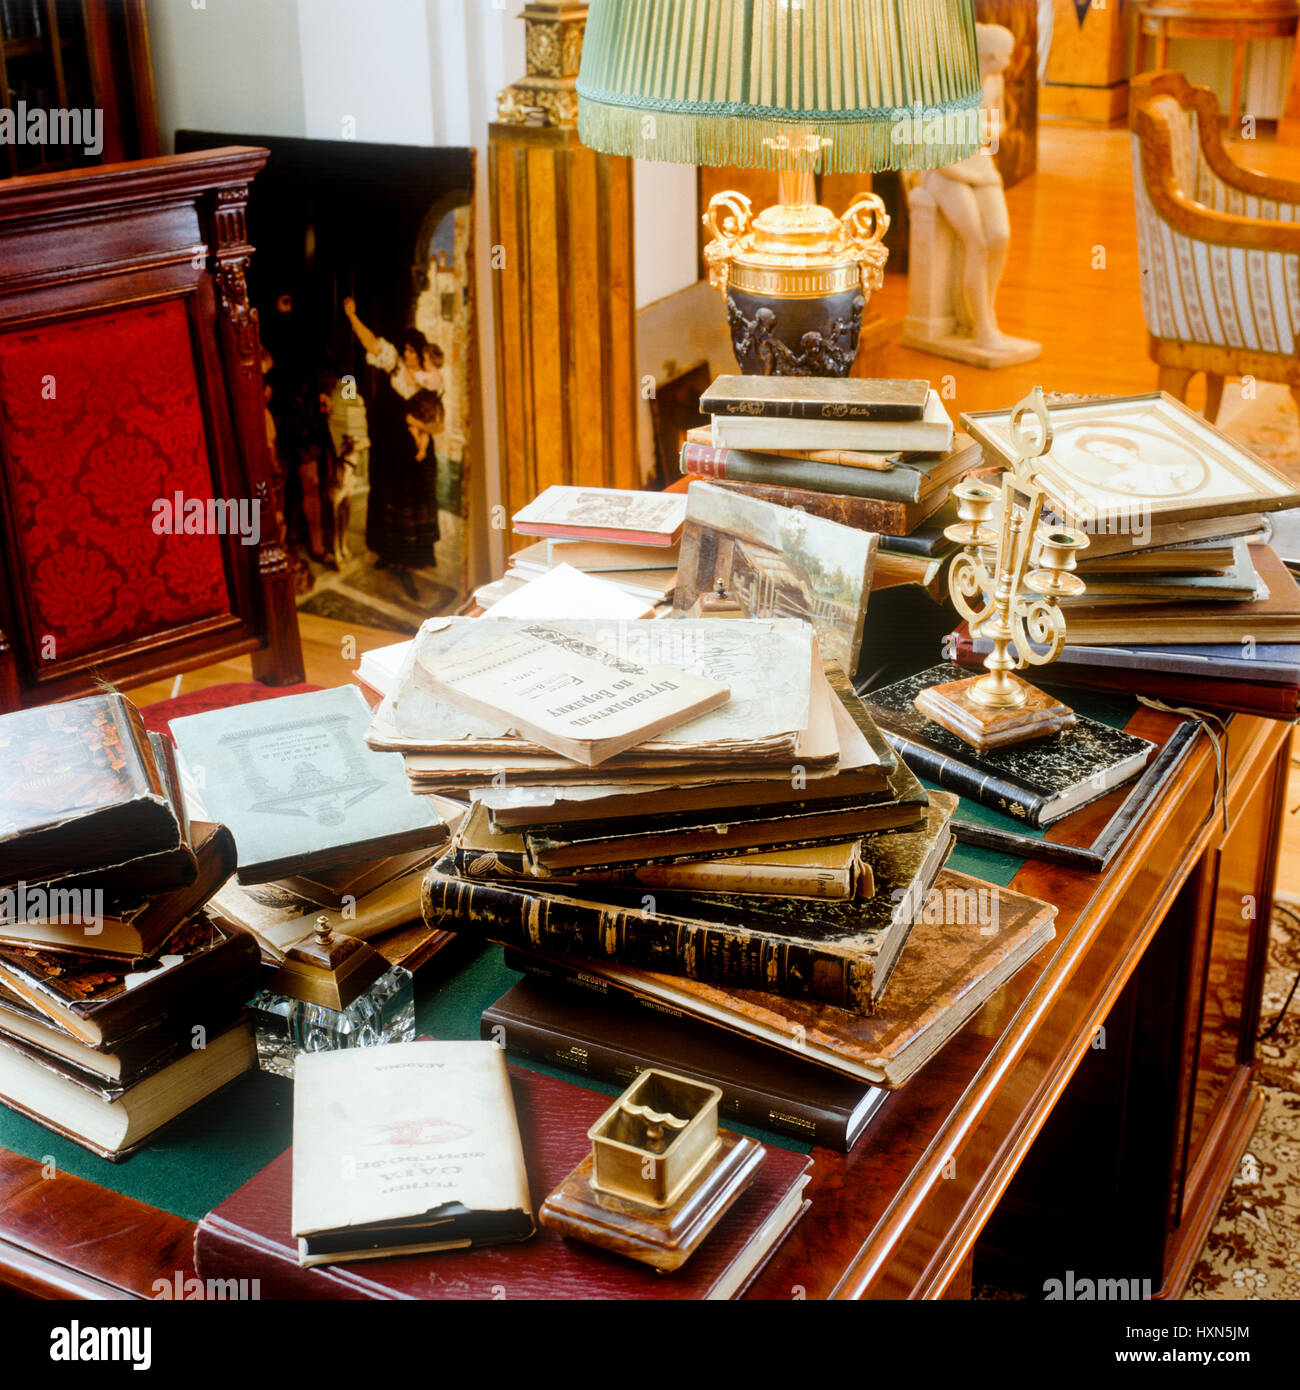 Books scattered on wooden desk Stock Photo: 136919068 - Alamy